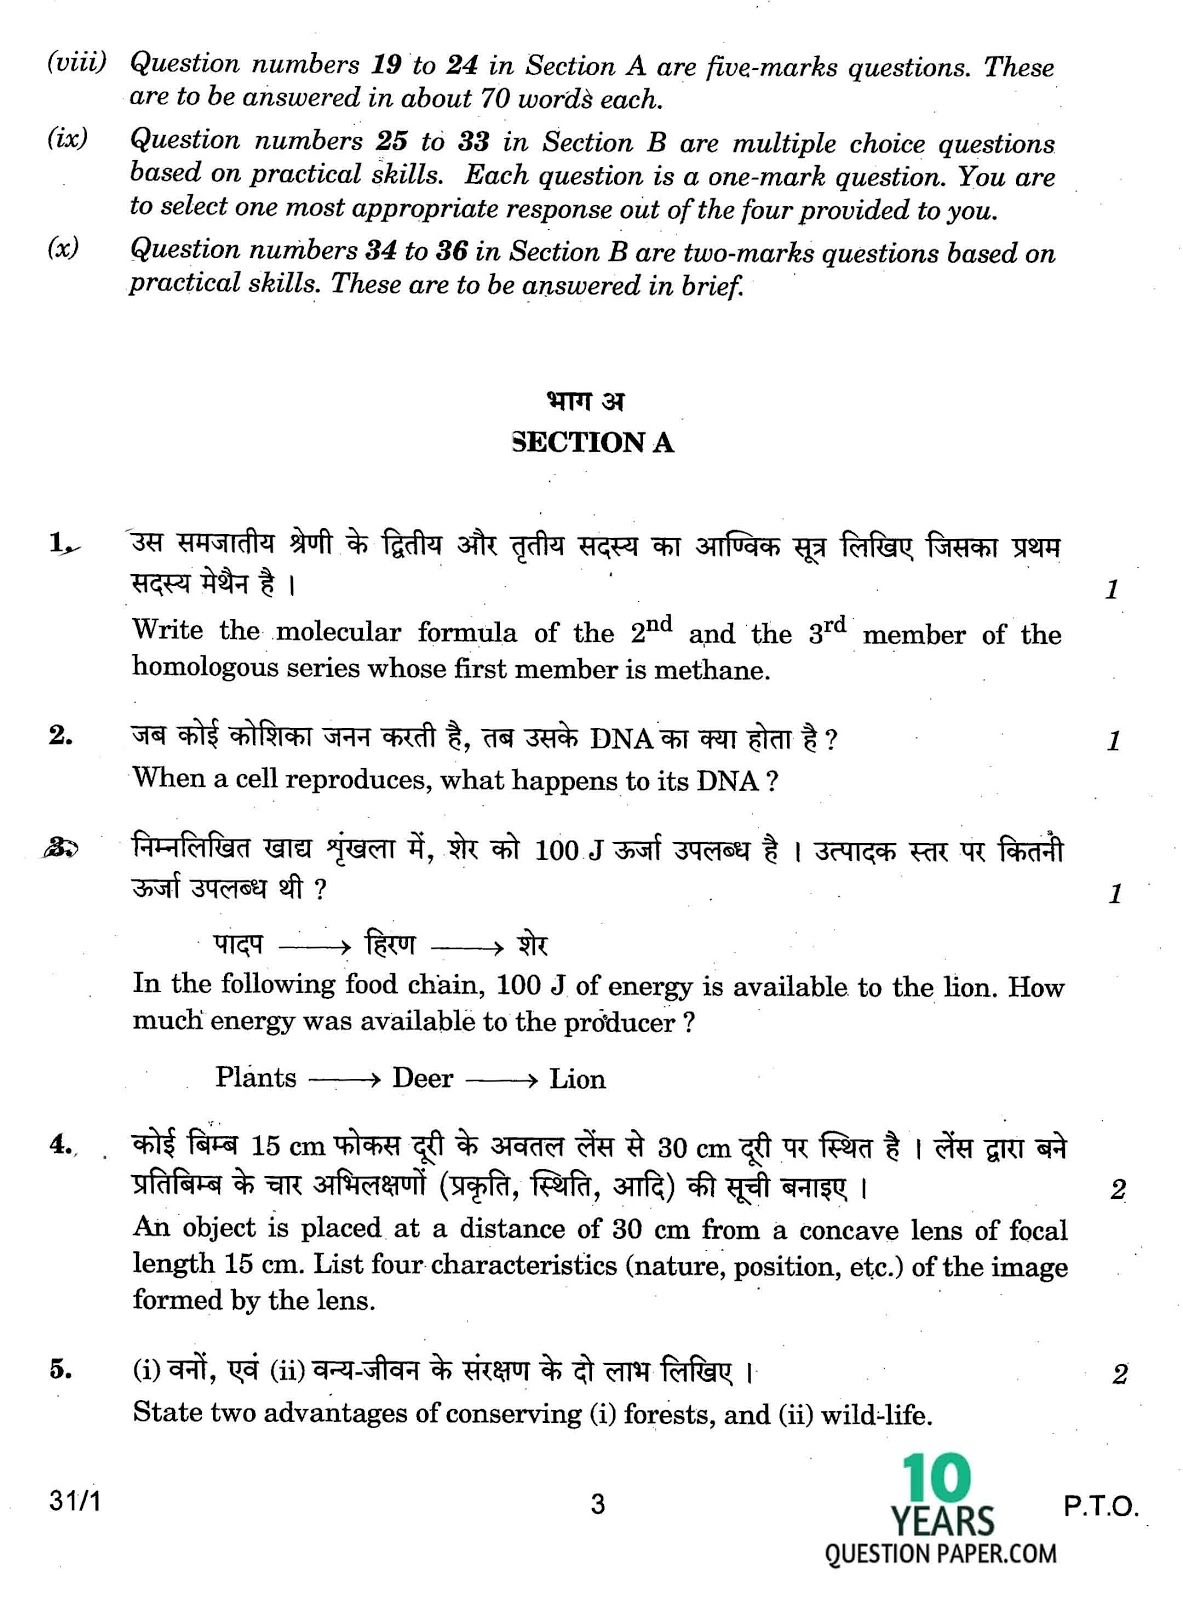 material science question paper We providing the gate metallurgical engineering previous year question papers in pdf format metallurgy is a domain of materials science and engineering that studies the physical and chemical behaviour of metallic elements, their intermetallic compounds, and their mixtures, which are called alloys.